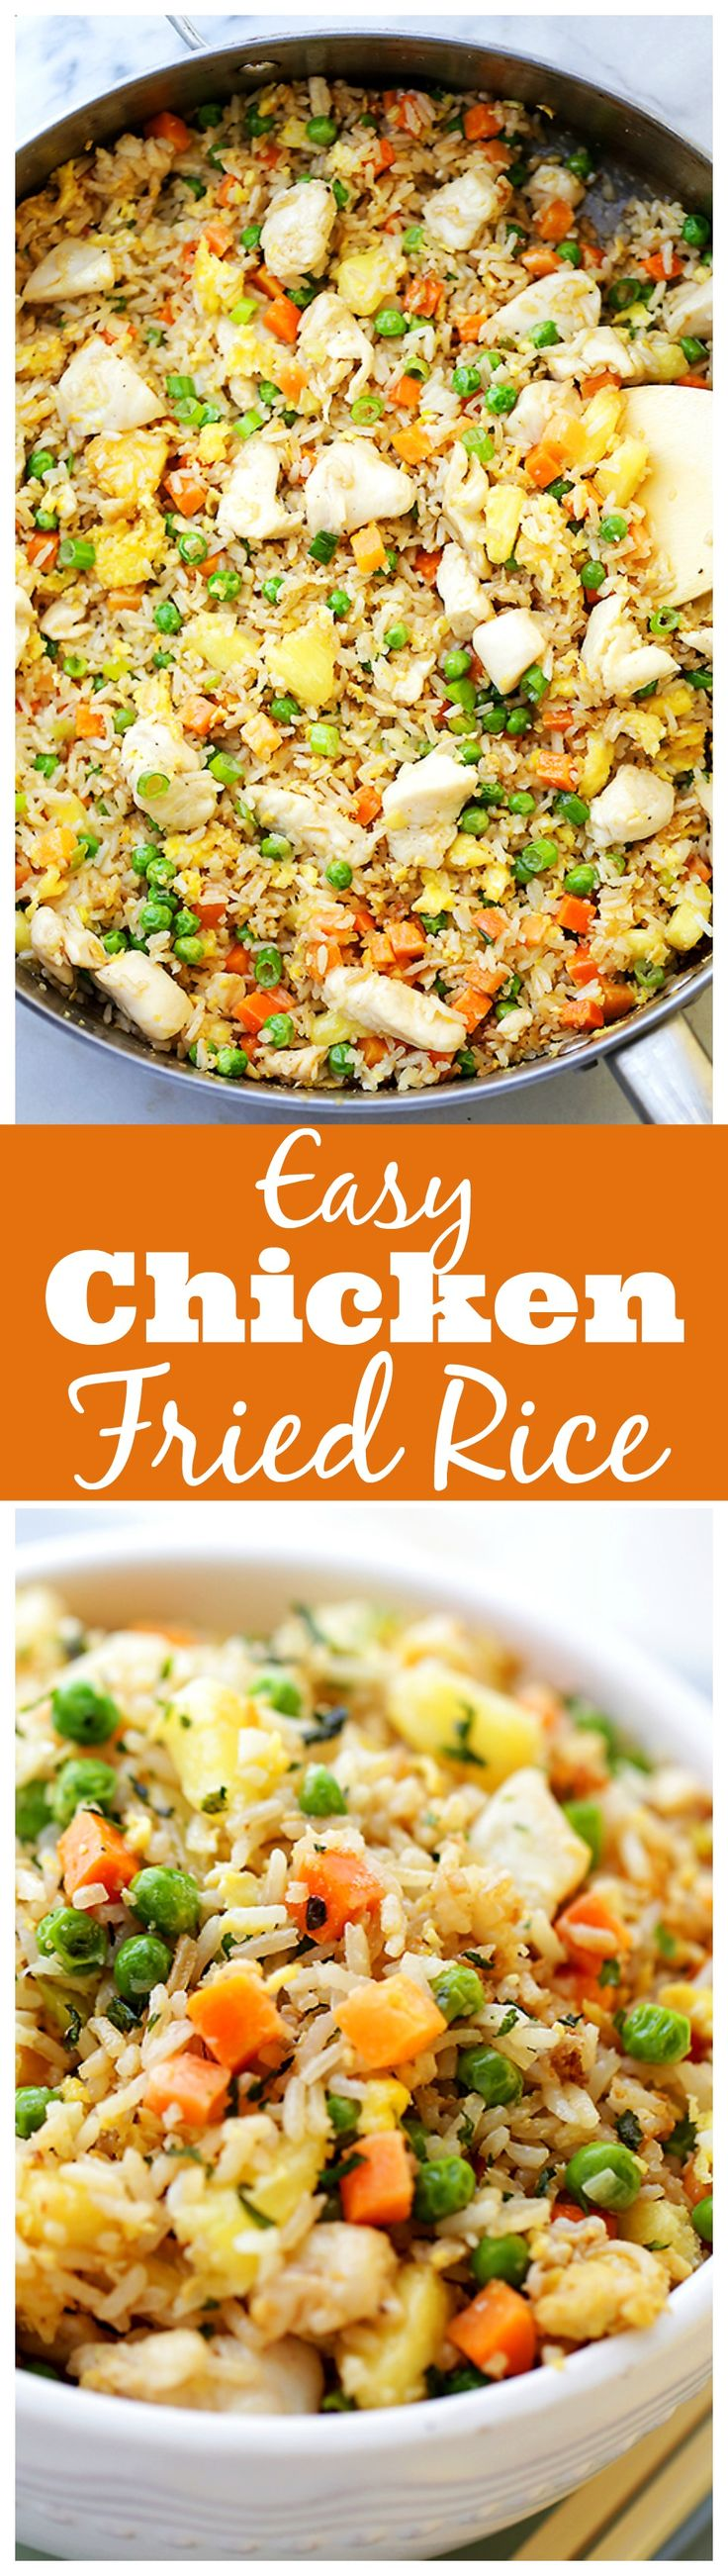 292 best foods fried rice images on pinterest cooking recipes easy chicken fried rice this chicken fried rice is so much better than takeout and you wont believe how easy and quick it is to make ccuart Choice Image